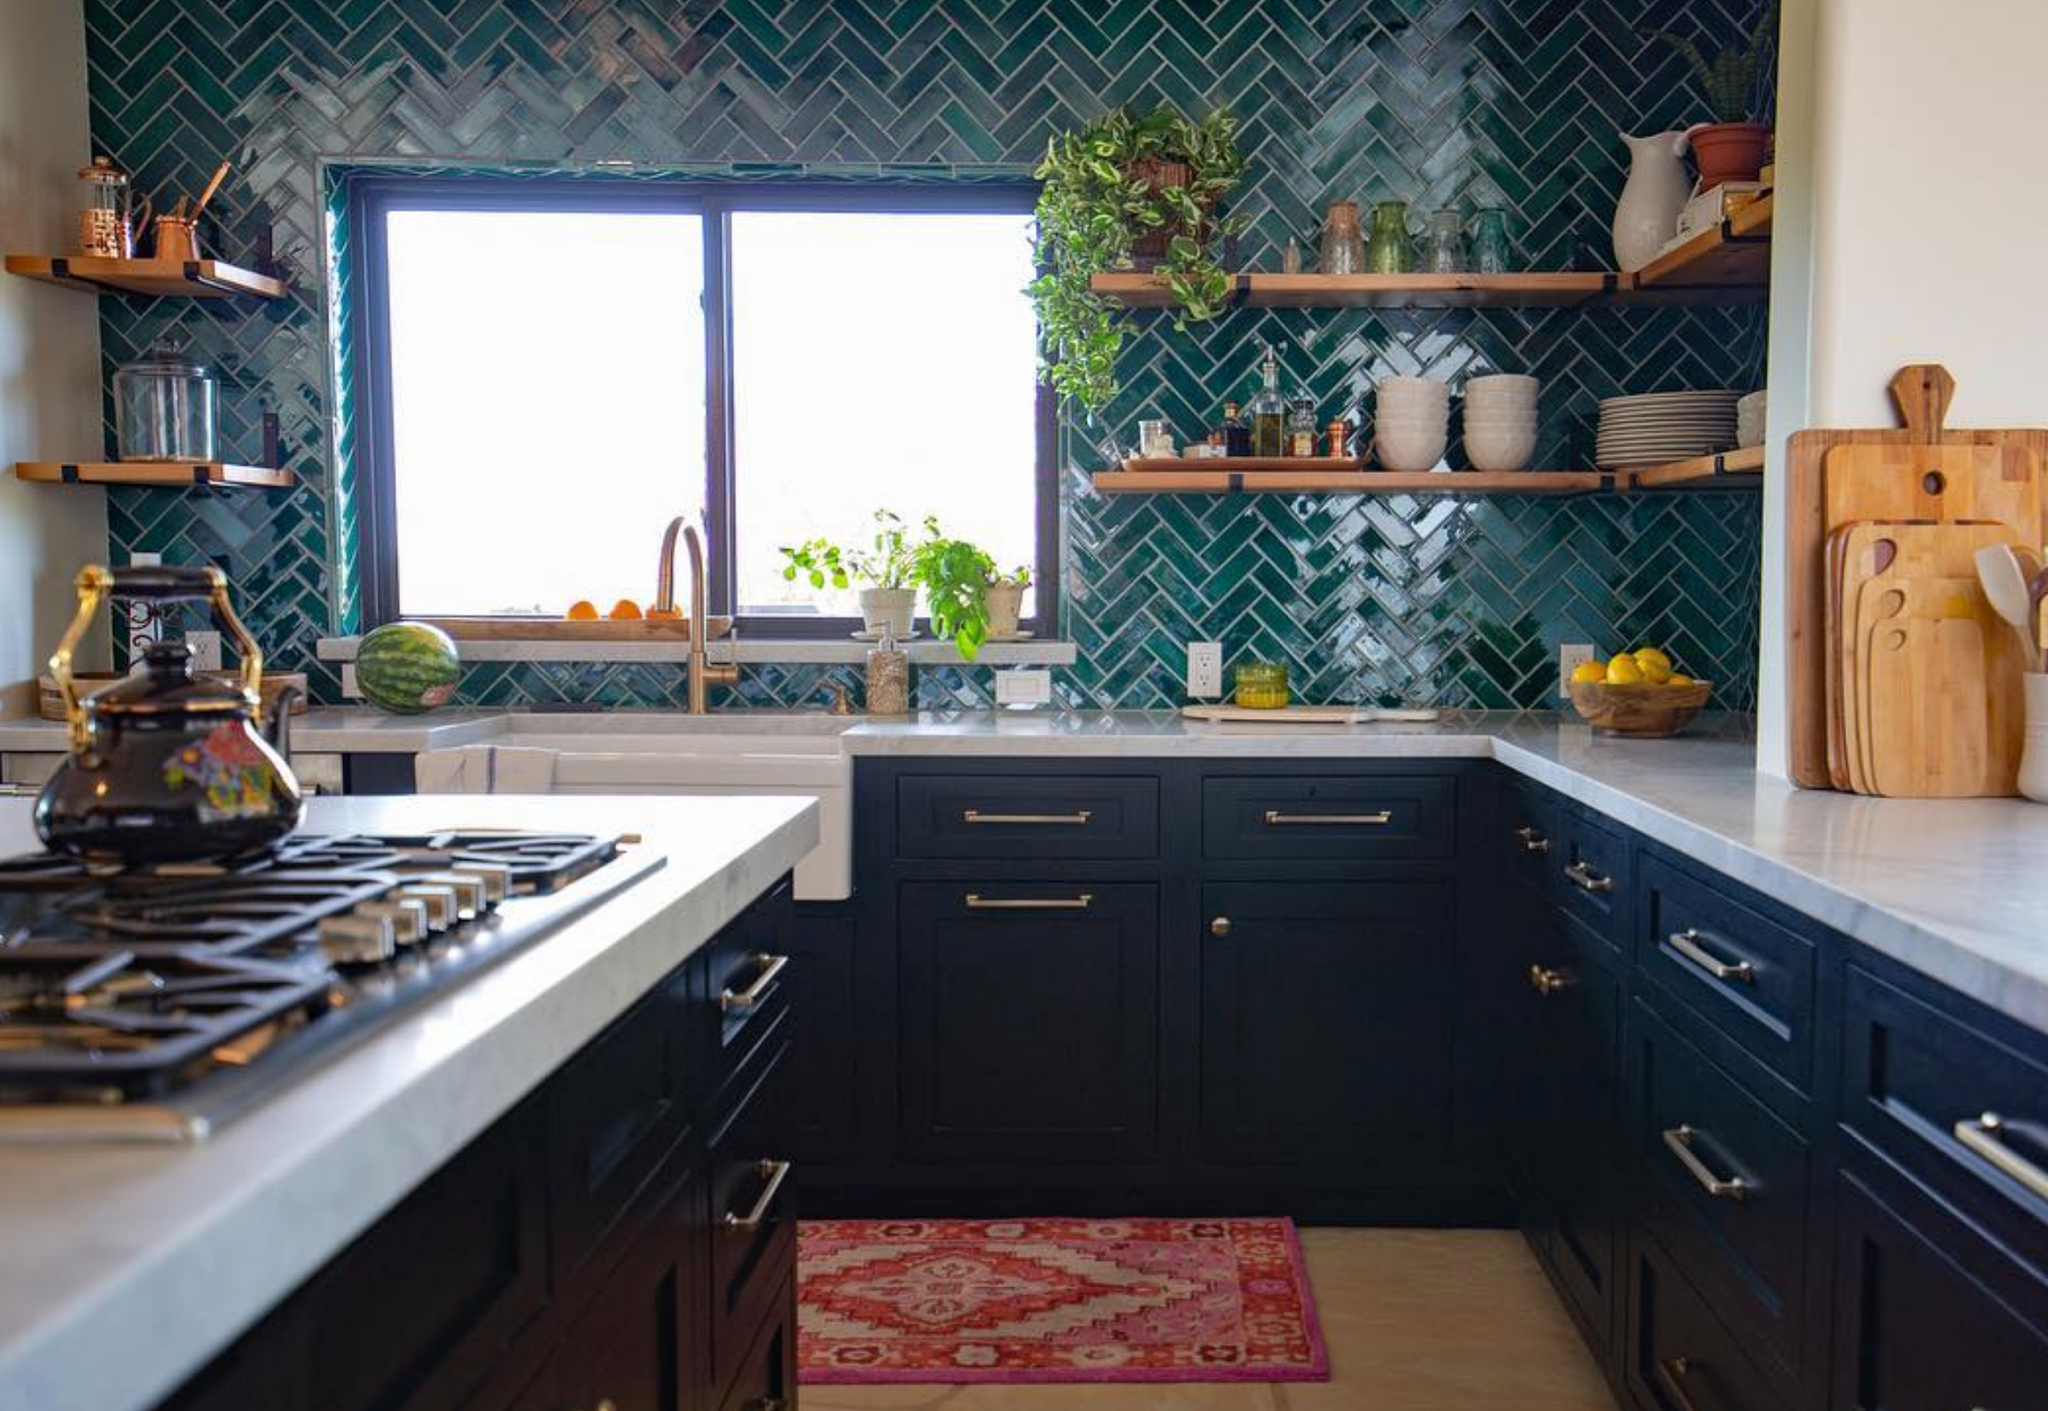 Bright and Bold Kitchen Backsplash